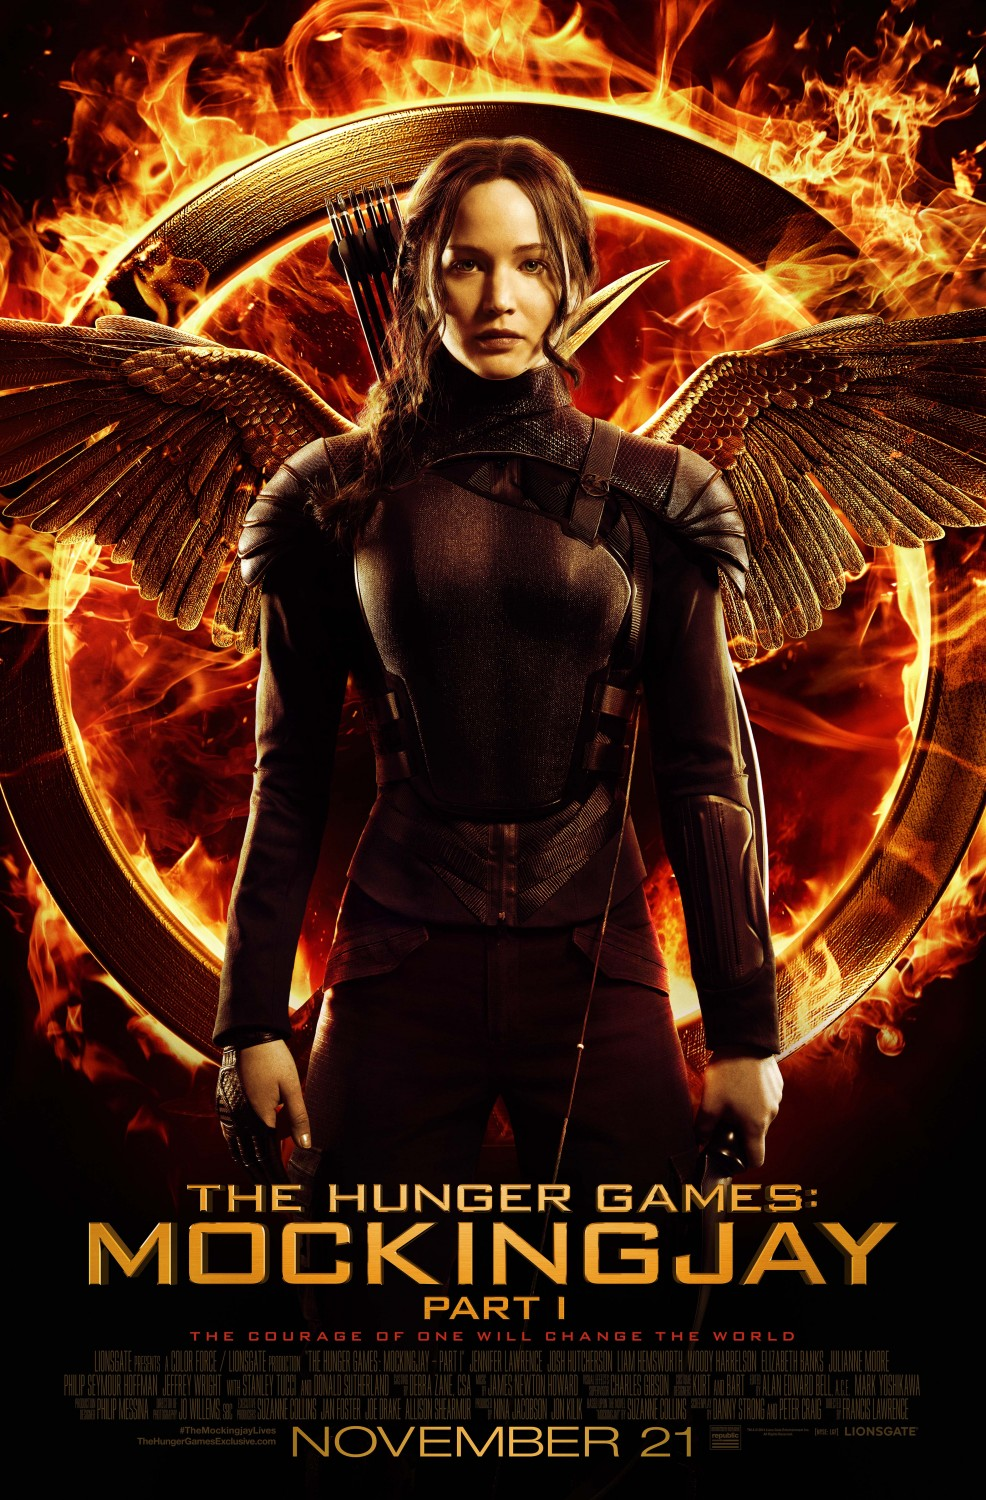 Jennifer Lawrence on Mocking Jay: Part 1 Poster